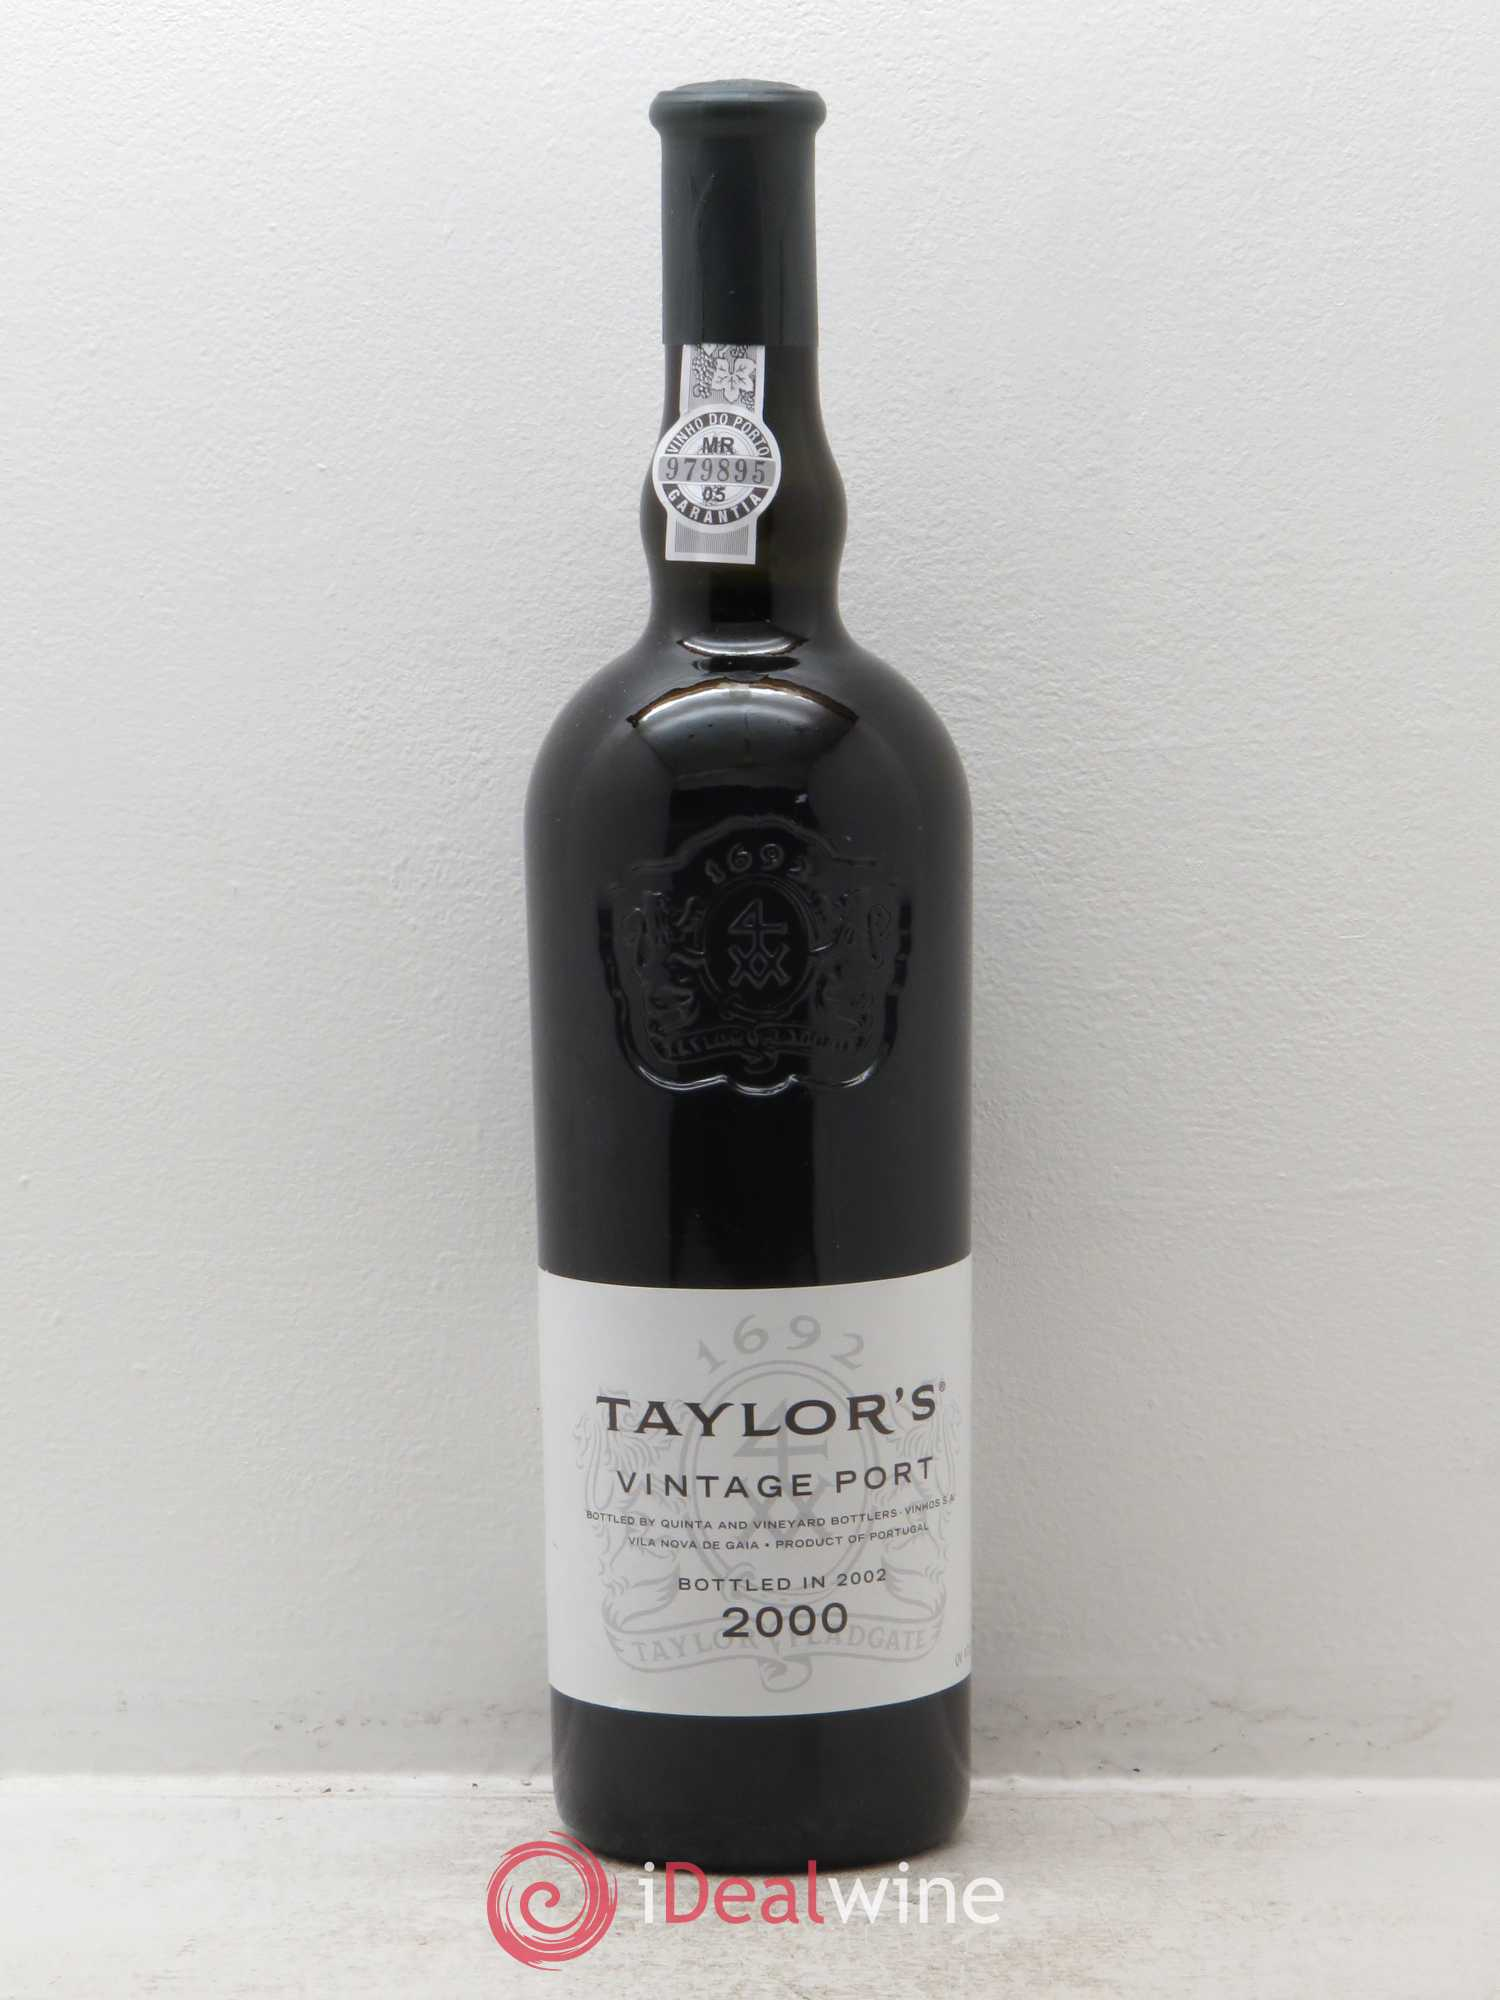 Porto Taylor's Vintage  2000 - Lot of 1 Bottle